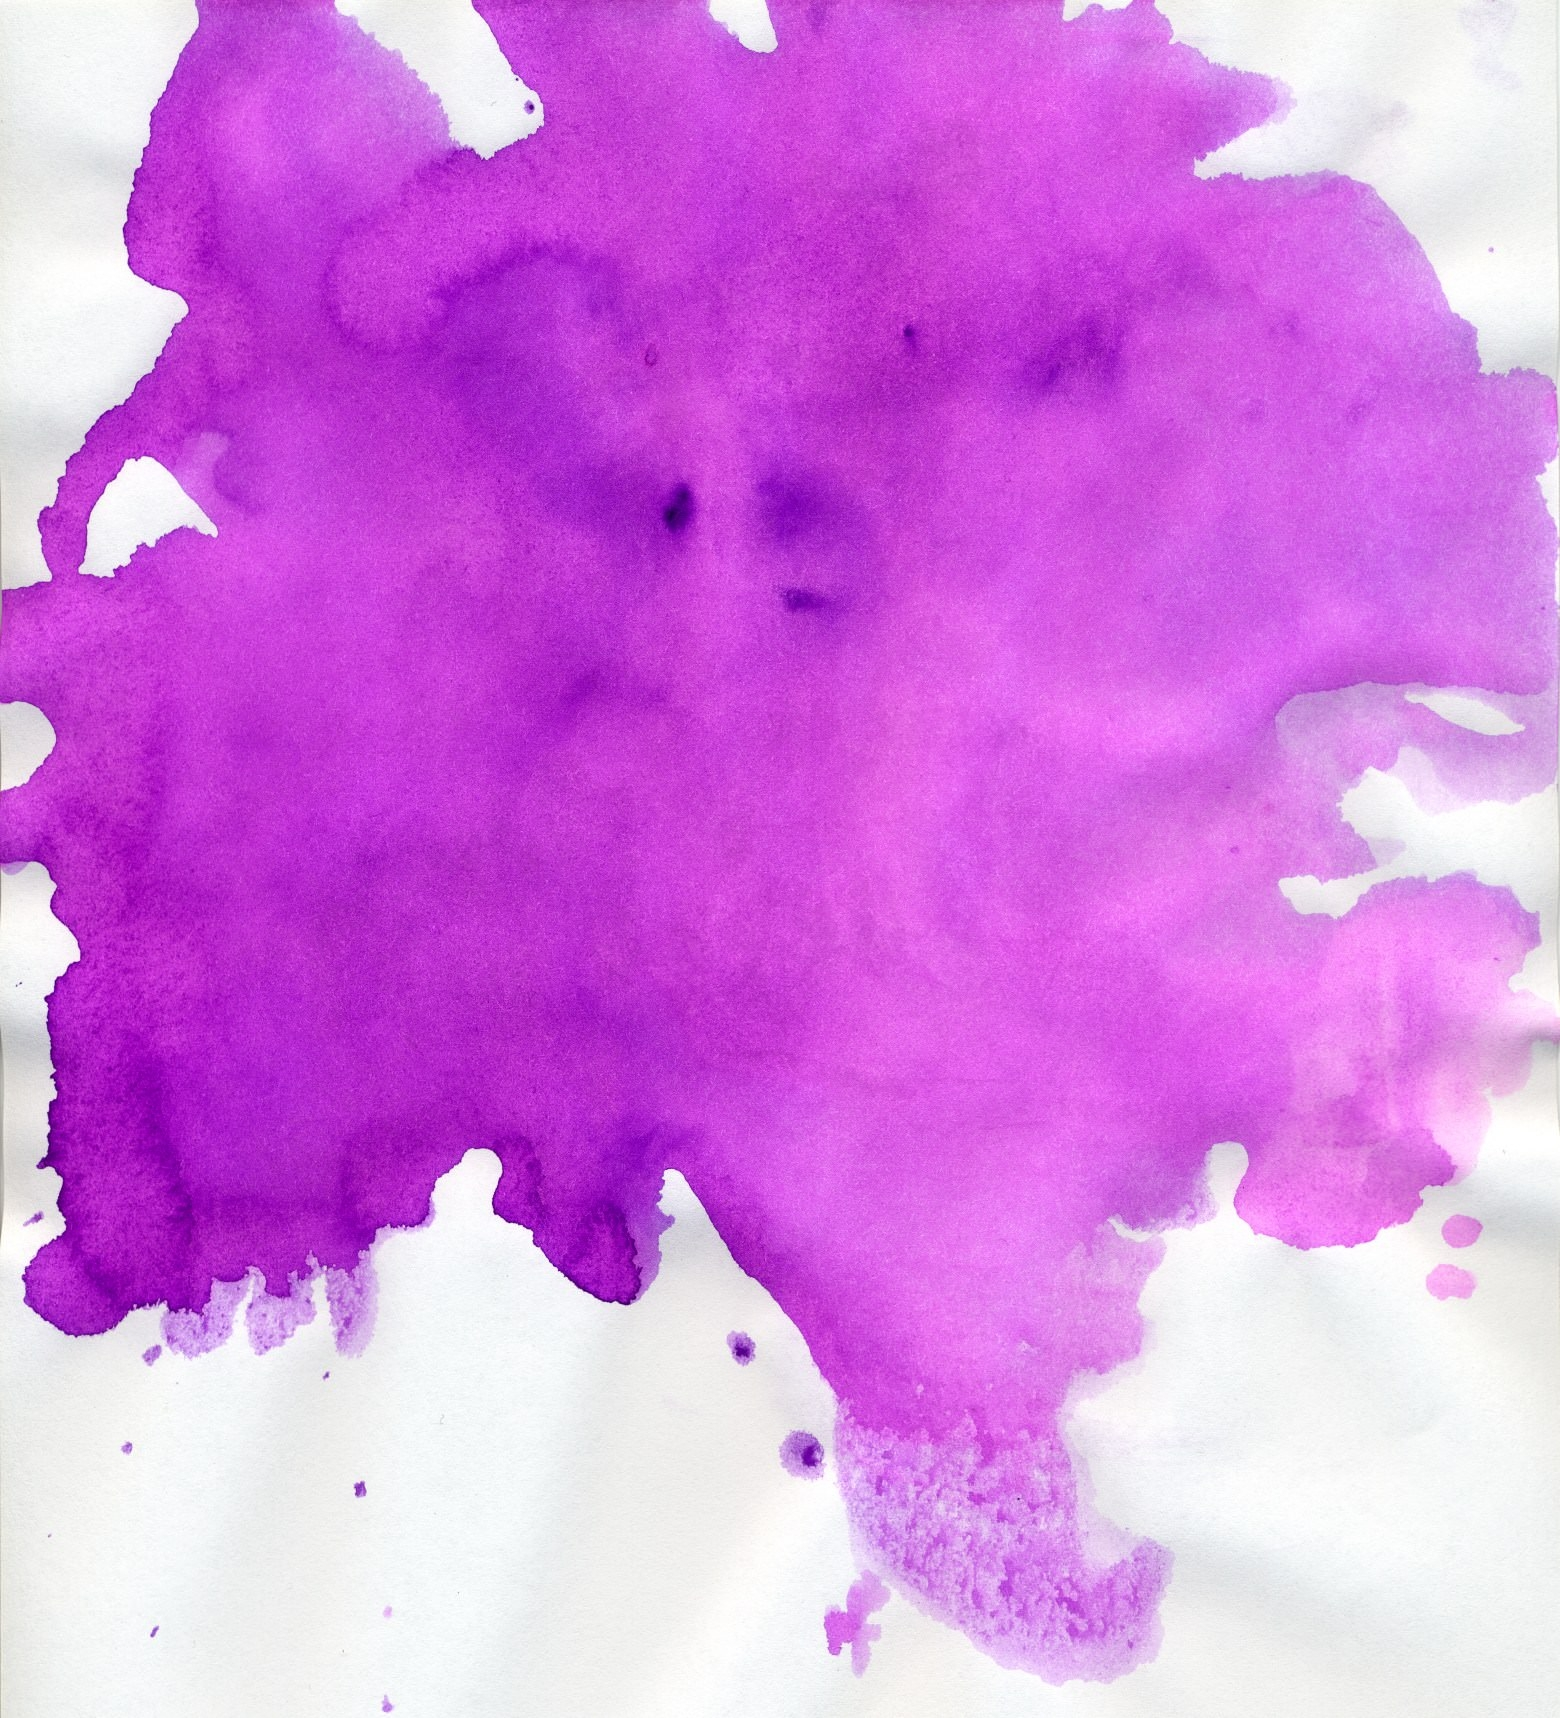 High Res Purple Watercolor Paint Texture Background